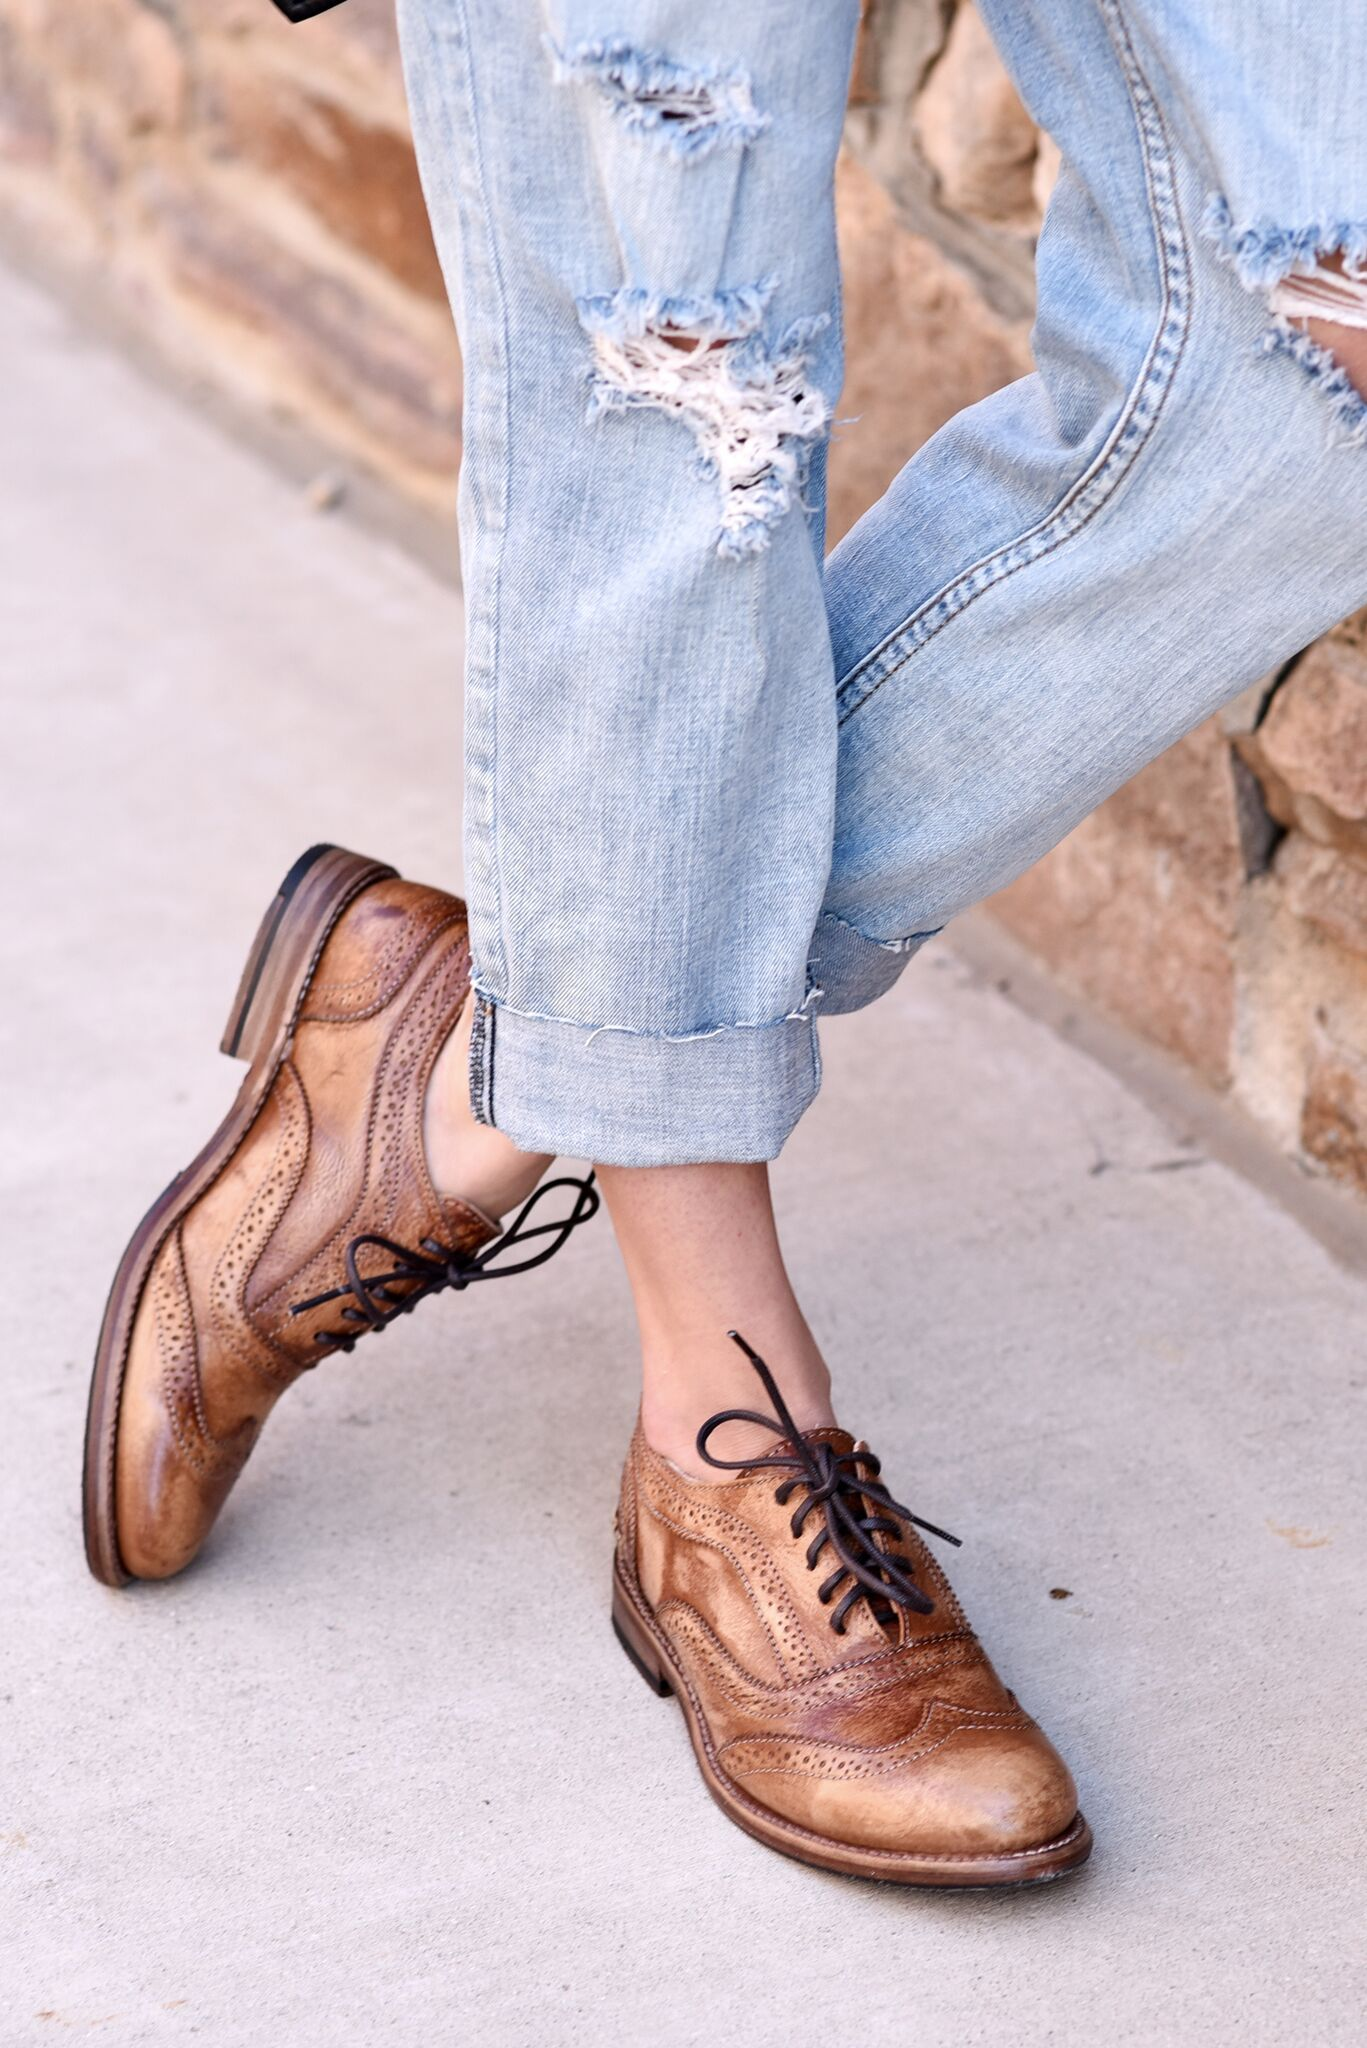 e616b298 The ultimate classic tan oxford by BEDSTU, styled with distressed light  washed denim,. Find this Pin and more on WOMEN'S - Flats ...